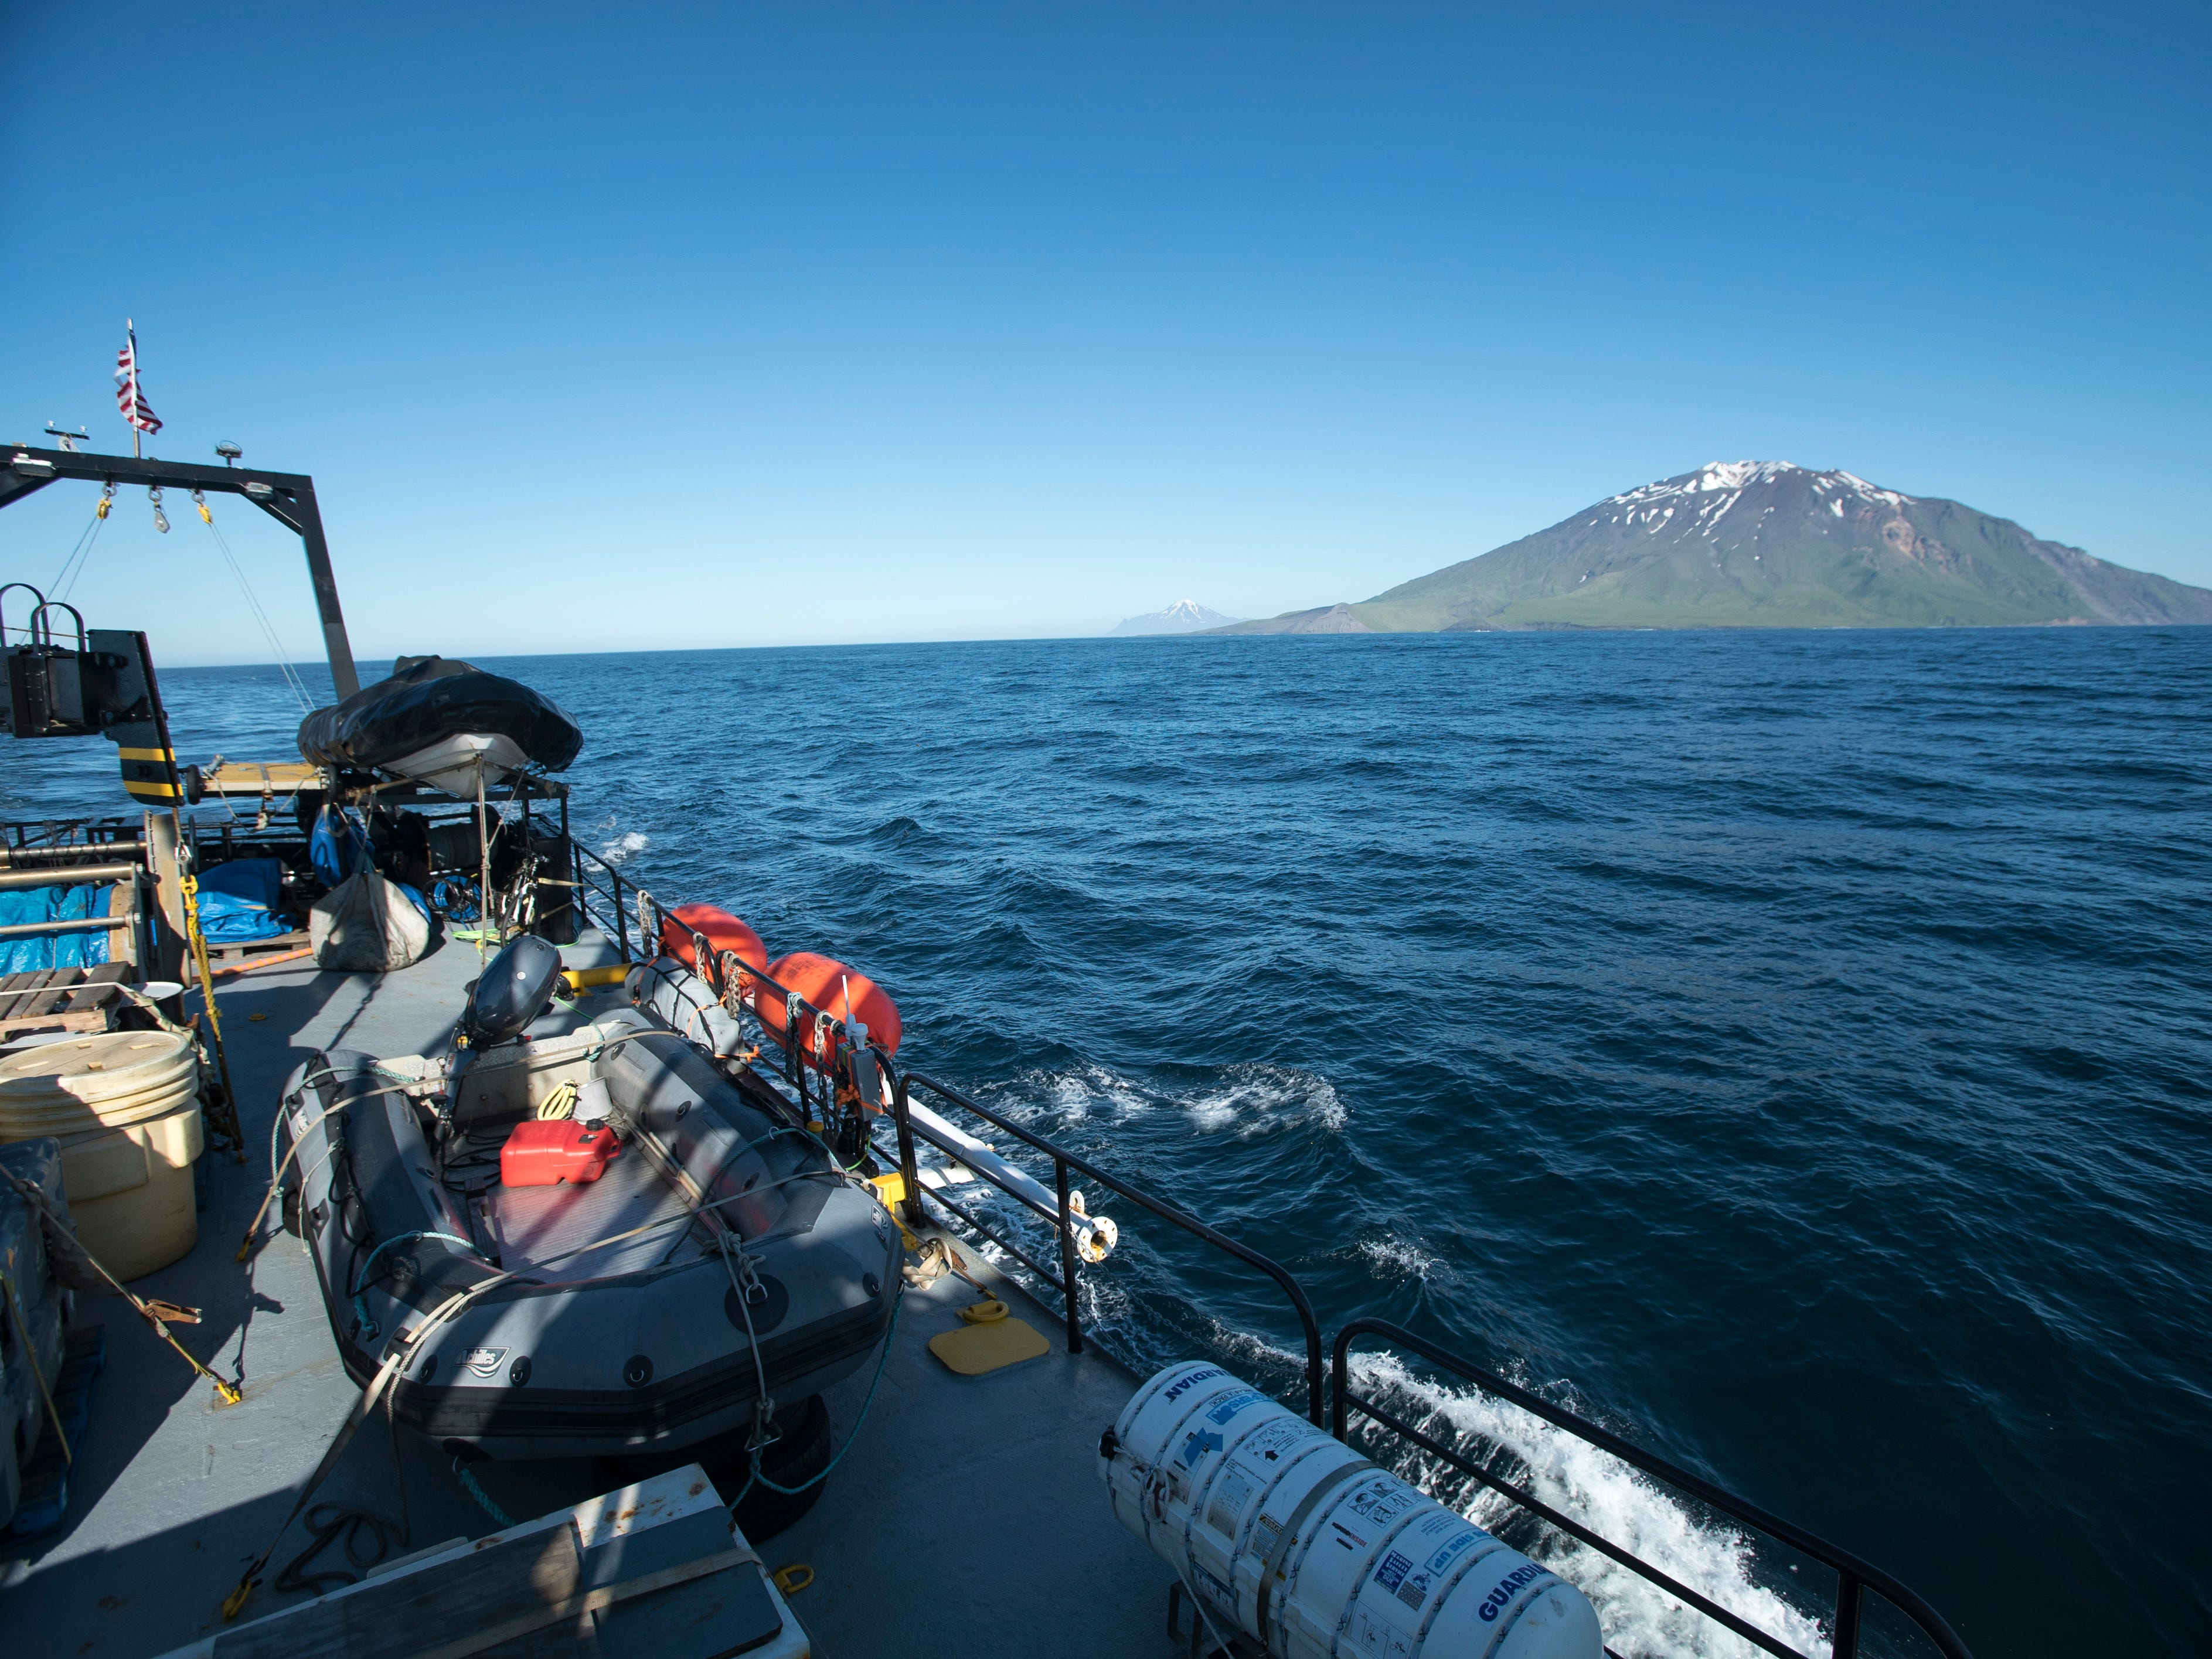 This summer, scientists funded by NOAA set out to find the USS Abner Read's stern, which had been resting at the bottom of the Bering Sea for 75 years.